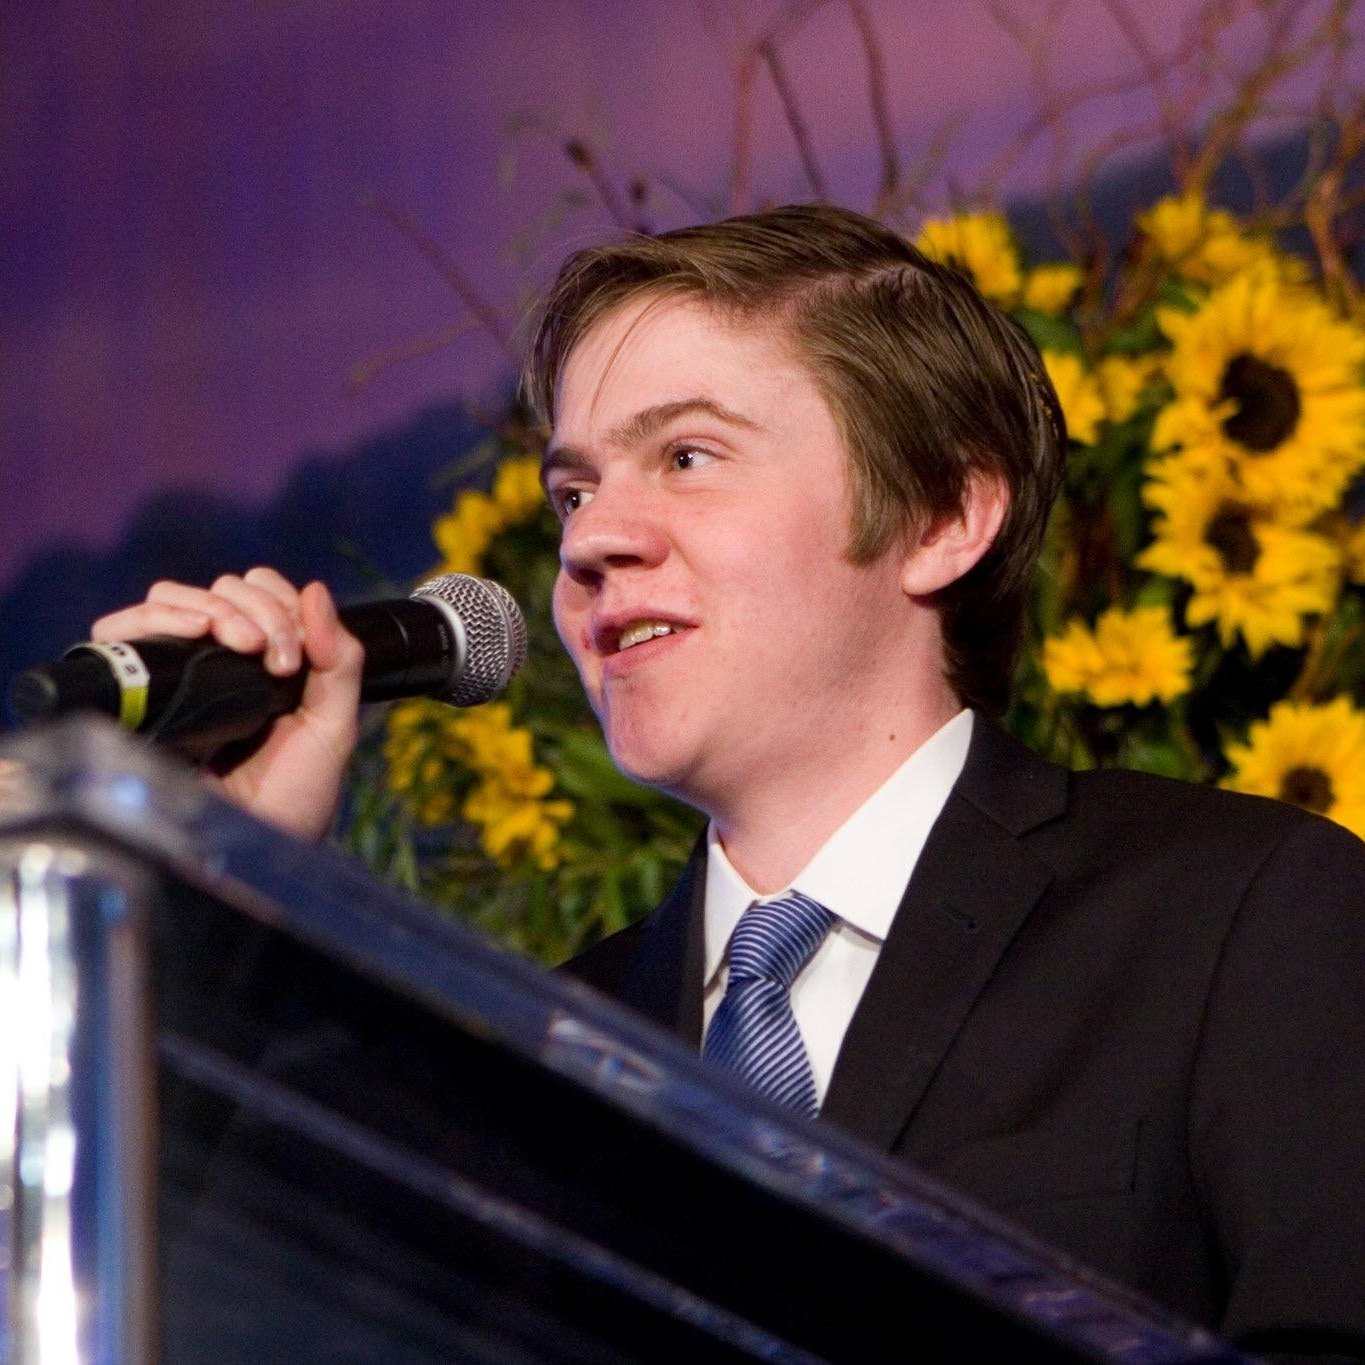 Speaking at the annual gala event for CureDuchenne